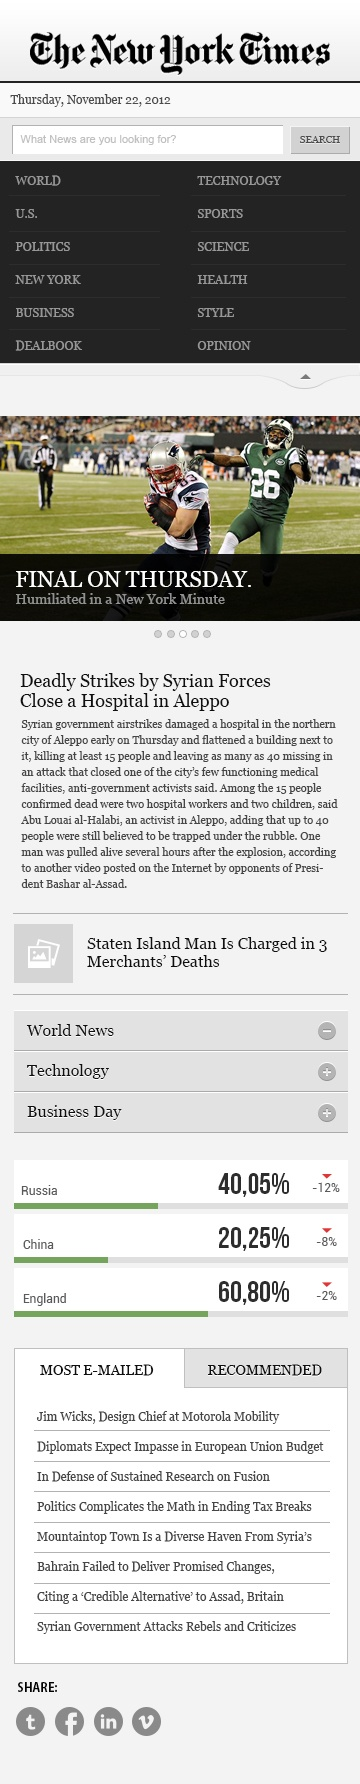 nytimes mobile website, welcome to all the feedback